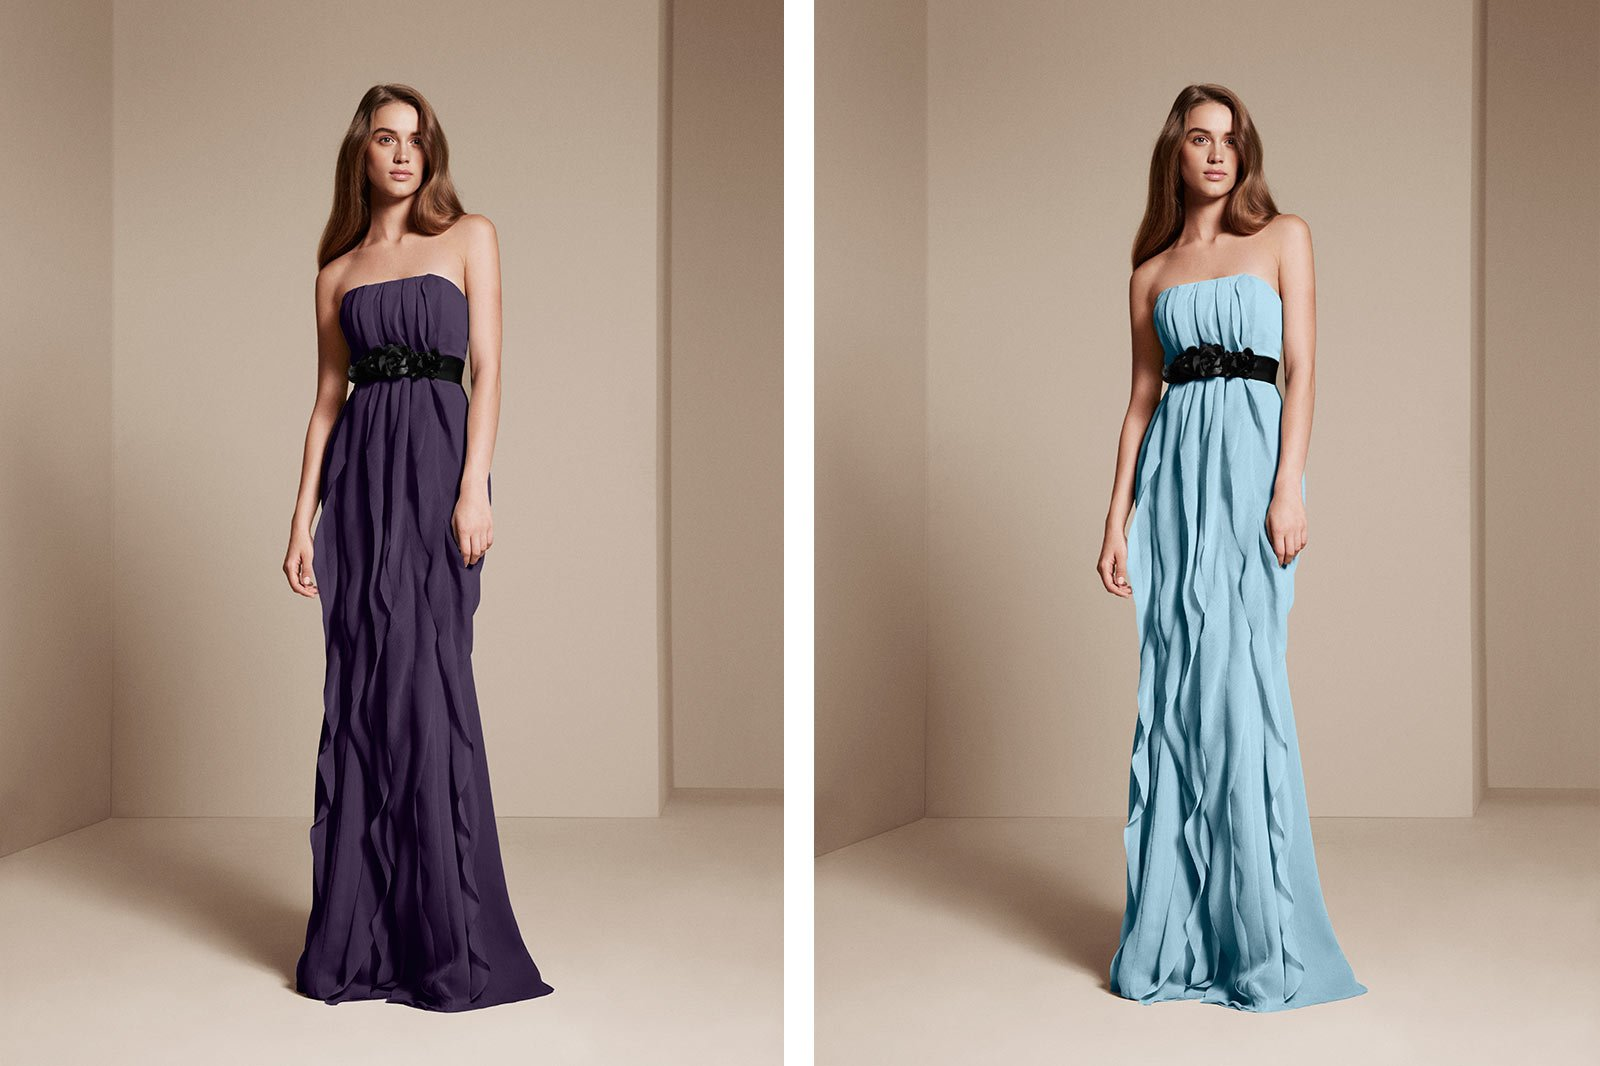 Colorways example - bridesmaid wearing bridesmaid dresses alternate blue and purple